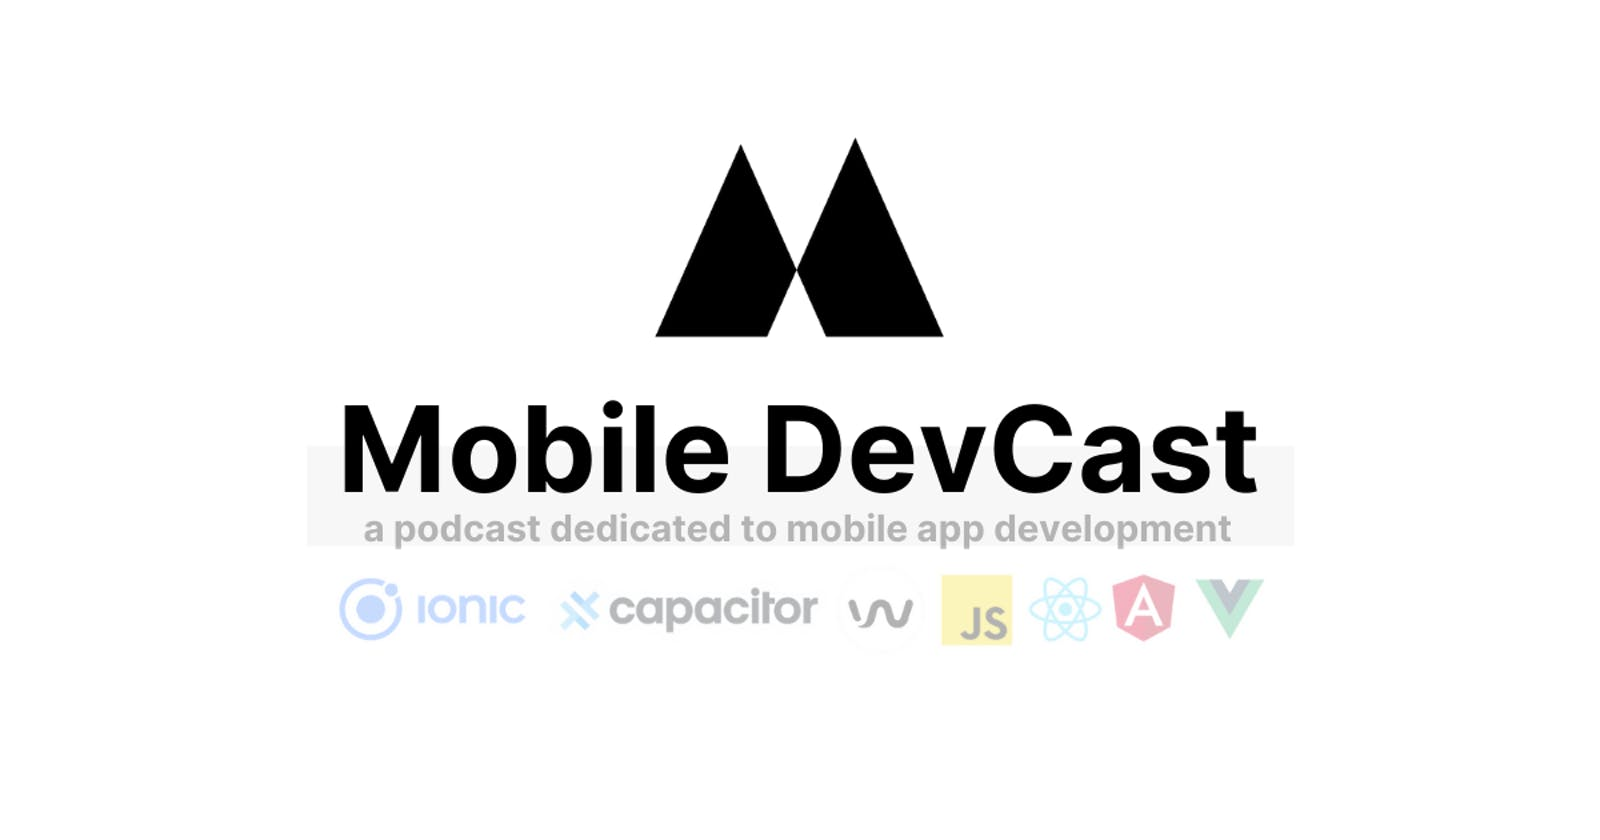 Mobile DevCast - A podcast dedicated to mobile app development and web native technologies